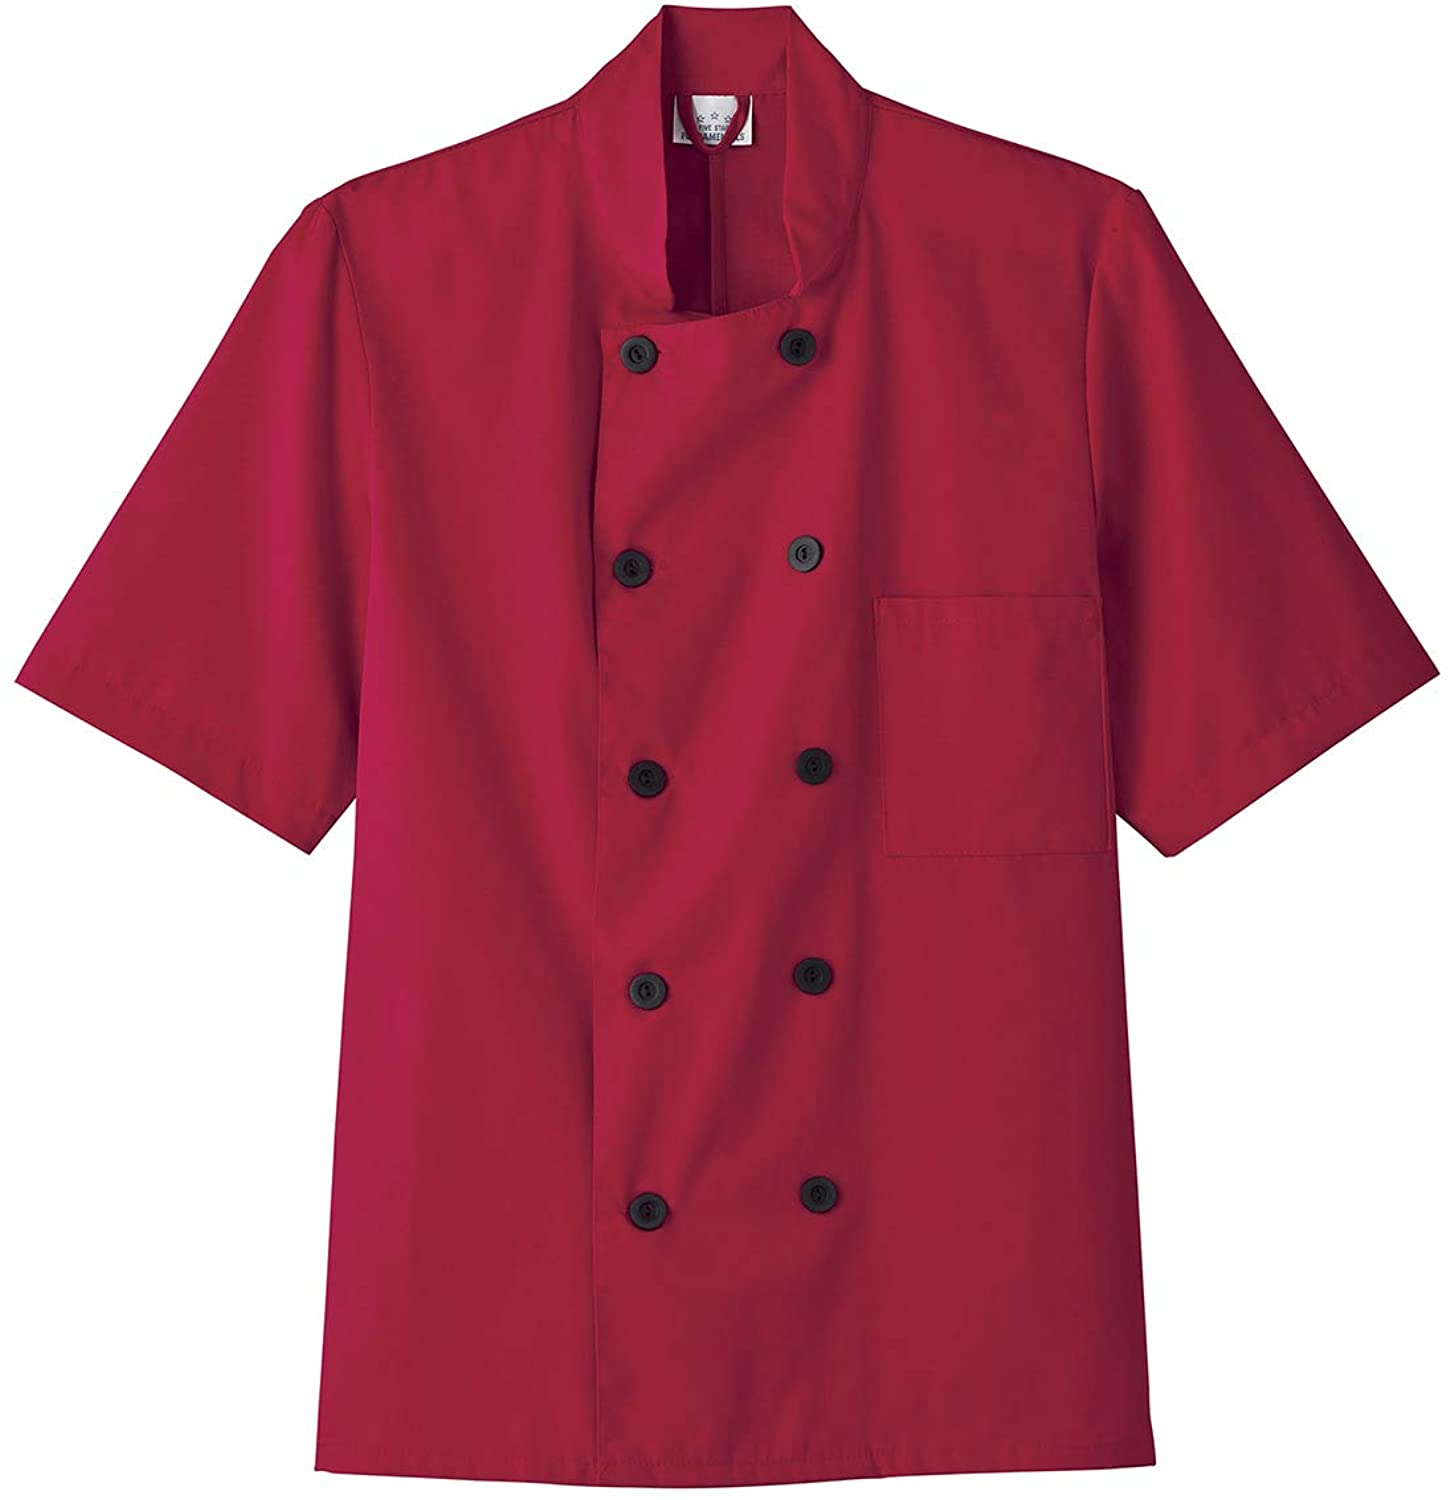 Five Star 18001/18025 Unisex Short Sleeve Chef Coat Red 3XL